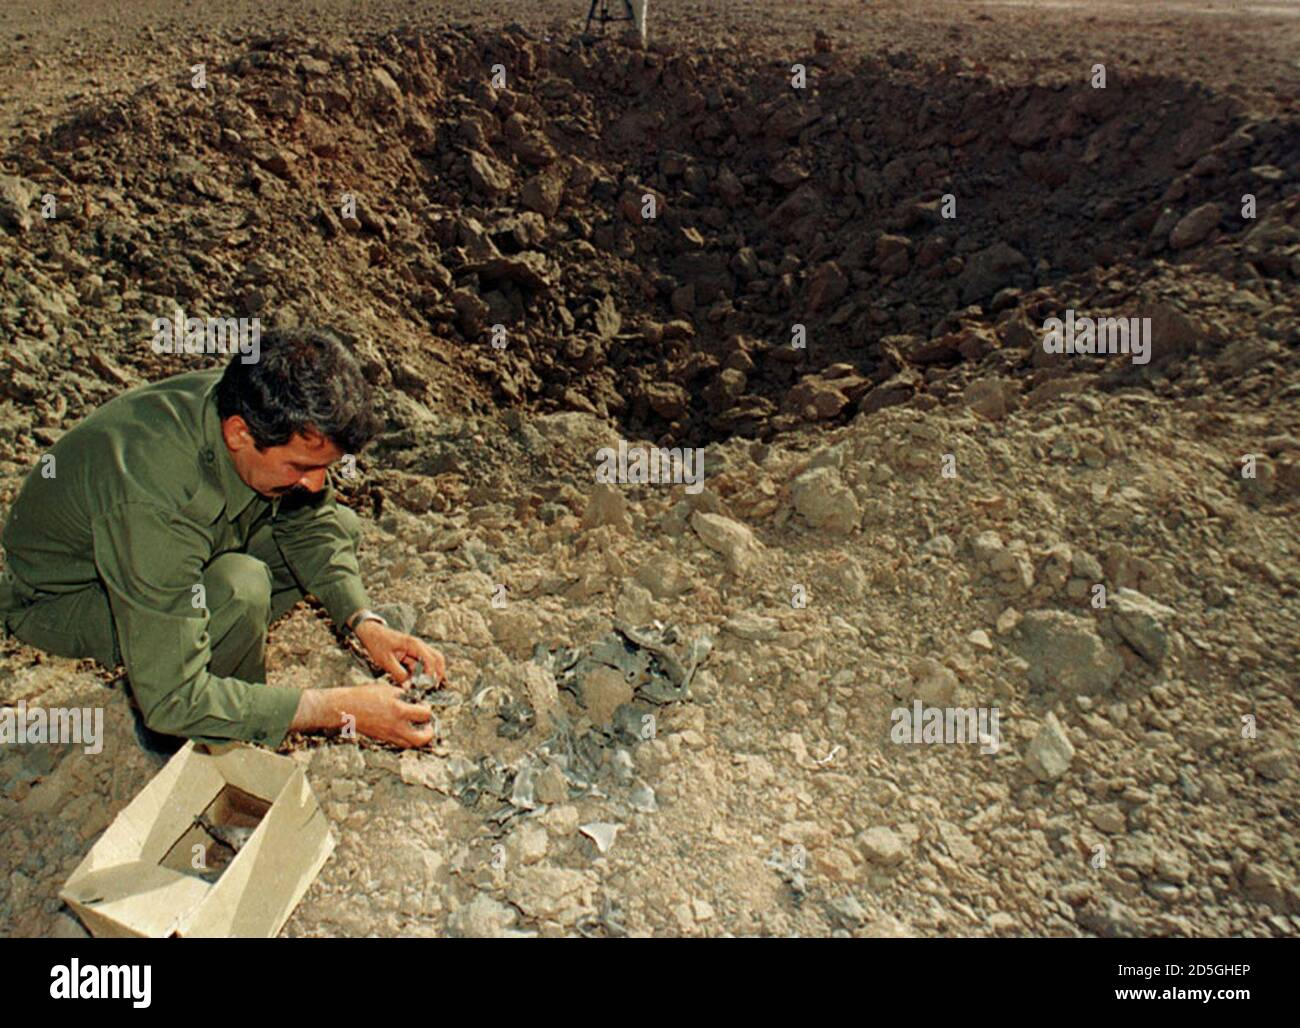 A Mujahideen fighter collects pieces of an Iranian missile June 11 which attacked a Mujahideen camp at Ashraf yesterday. Iraq said on Friday that Iran had fired three long-range misiles at an Iranian exile opposition group based inside Iraq. The official Iraqi news agency said that the camp belonged to Iranian opposition group Mujahideen Khalq. Ashraf is 100kms northeast of Bahgdad.  FK/KM Stock Photo